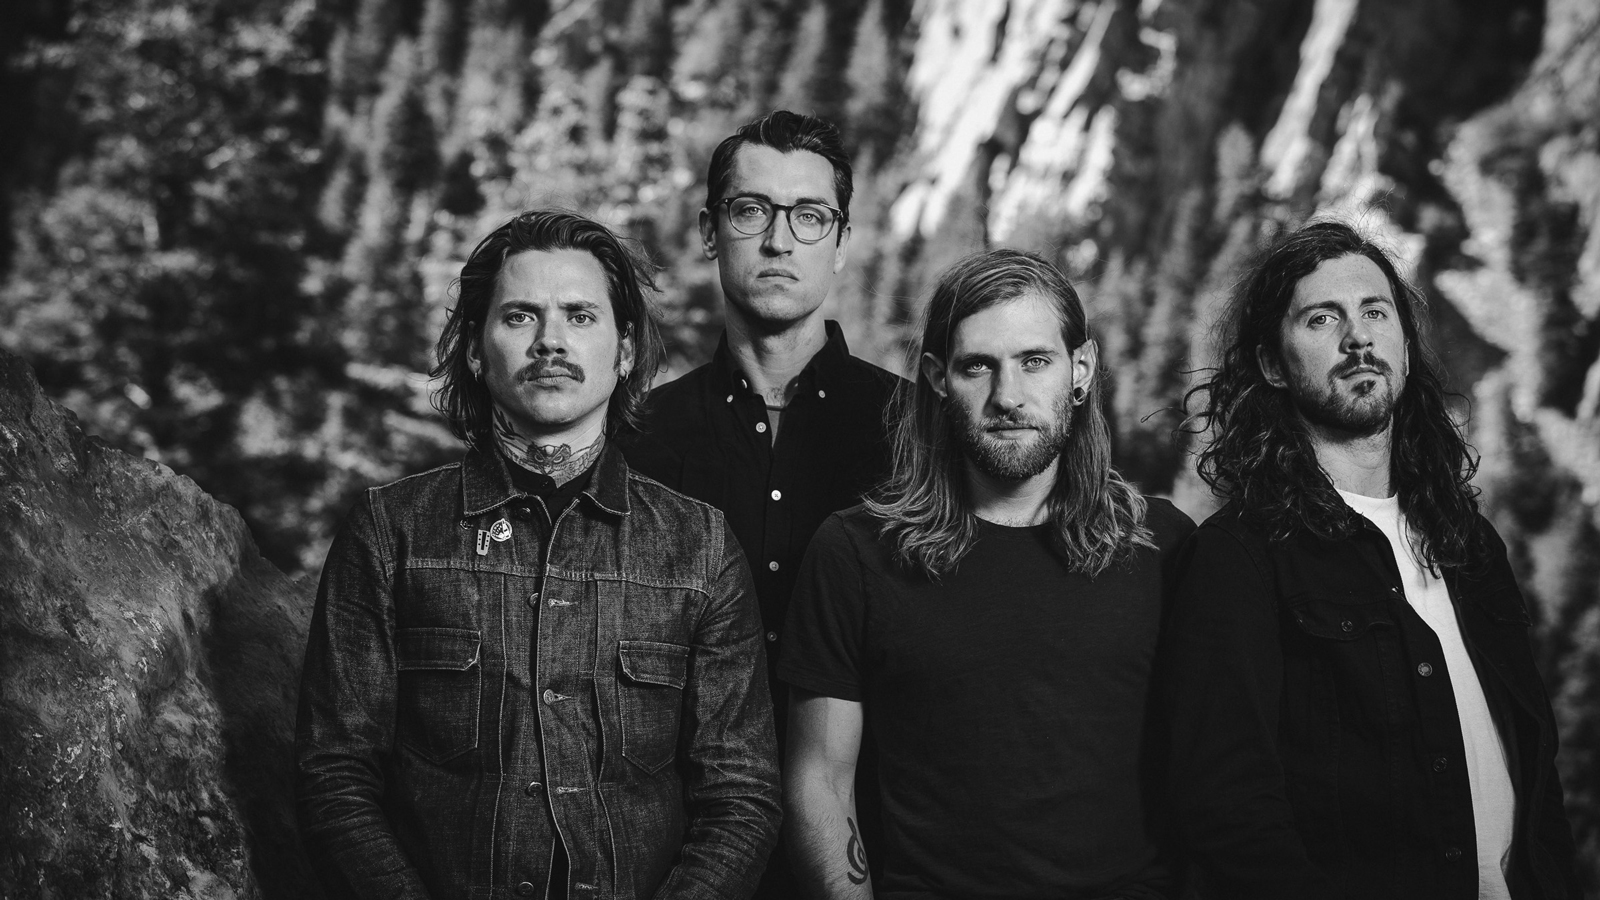 Devil Wears Prada: How Faith, Hell, Chelsea Wolfe Inspired Metalcore Act's New Album